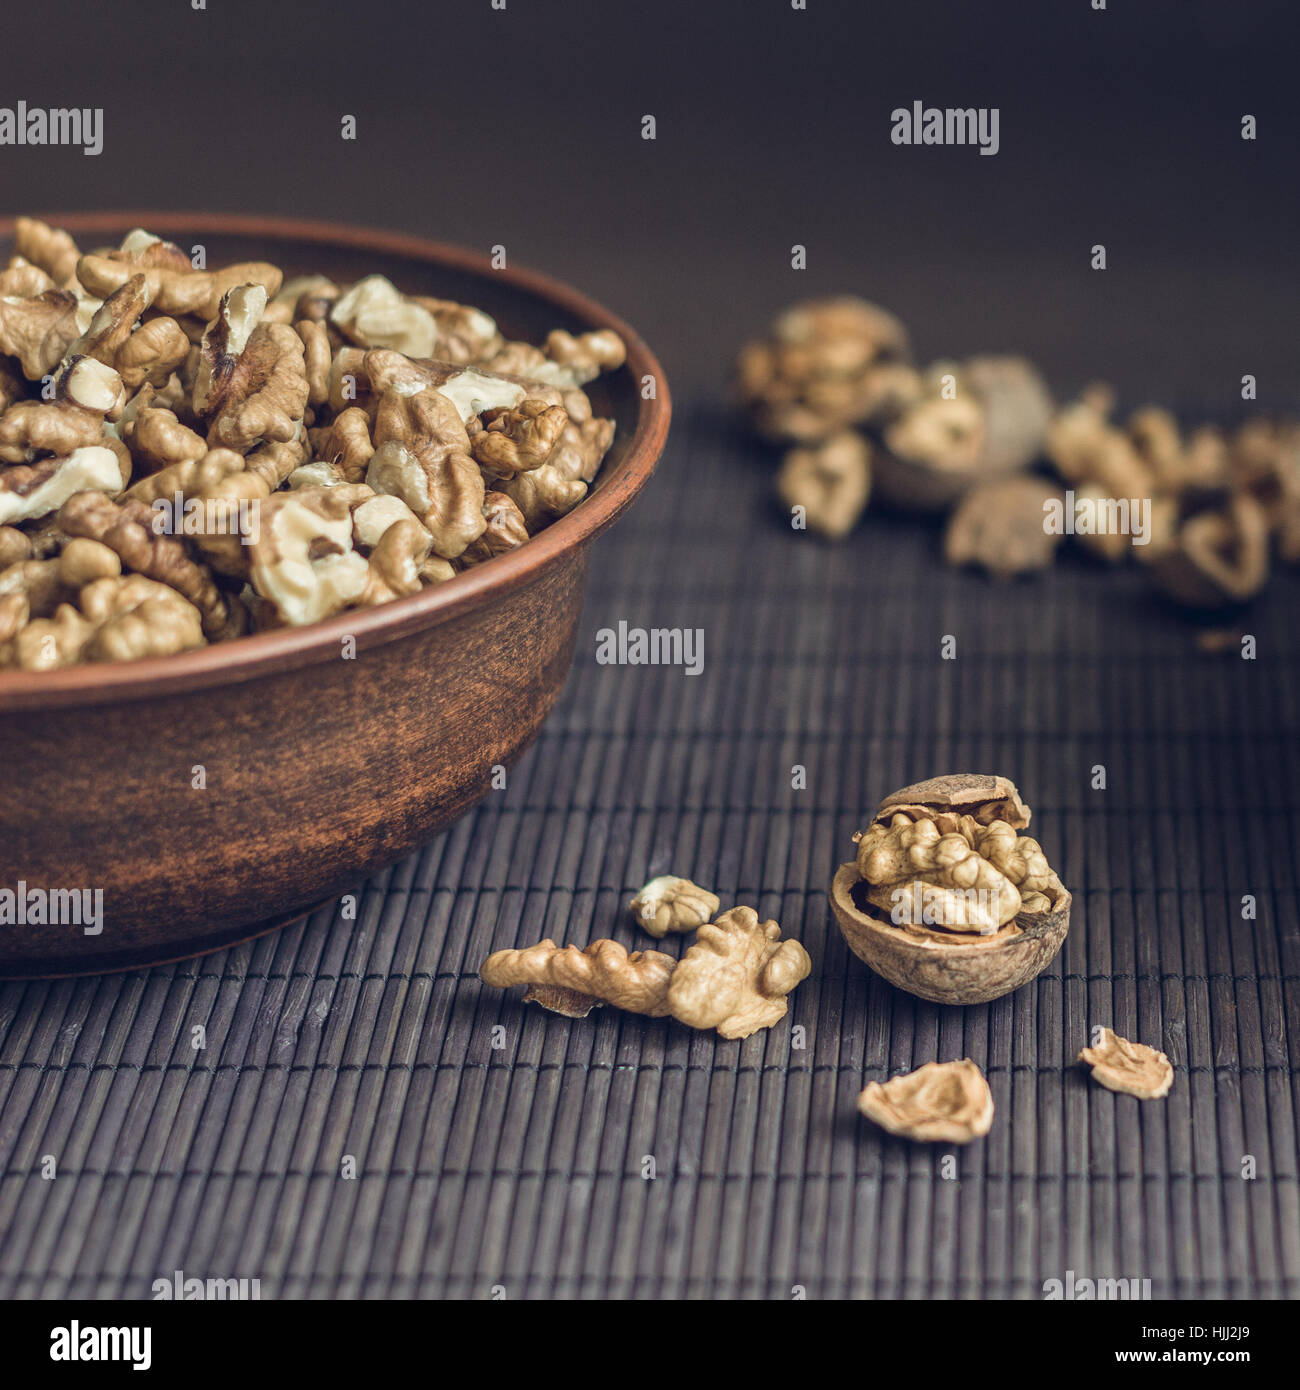 Walnut kernels and whole walnuts in brown ceramic bowl. Healthy organic food concept. Square composition - Stock Image